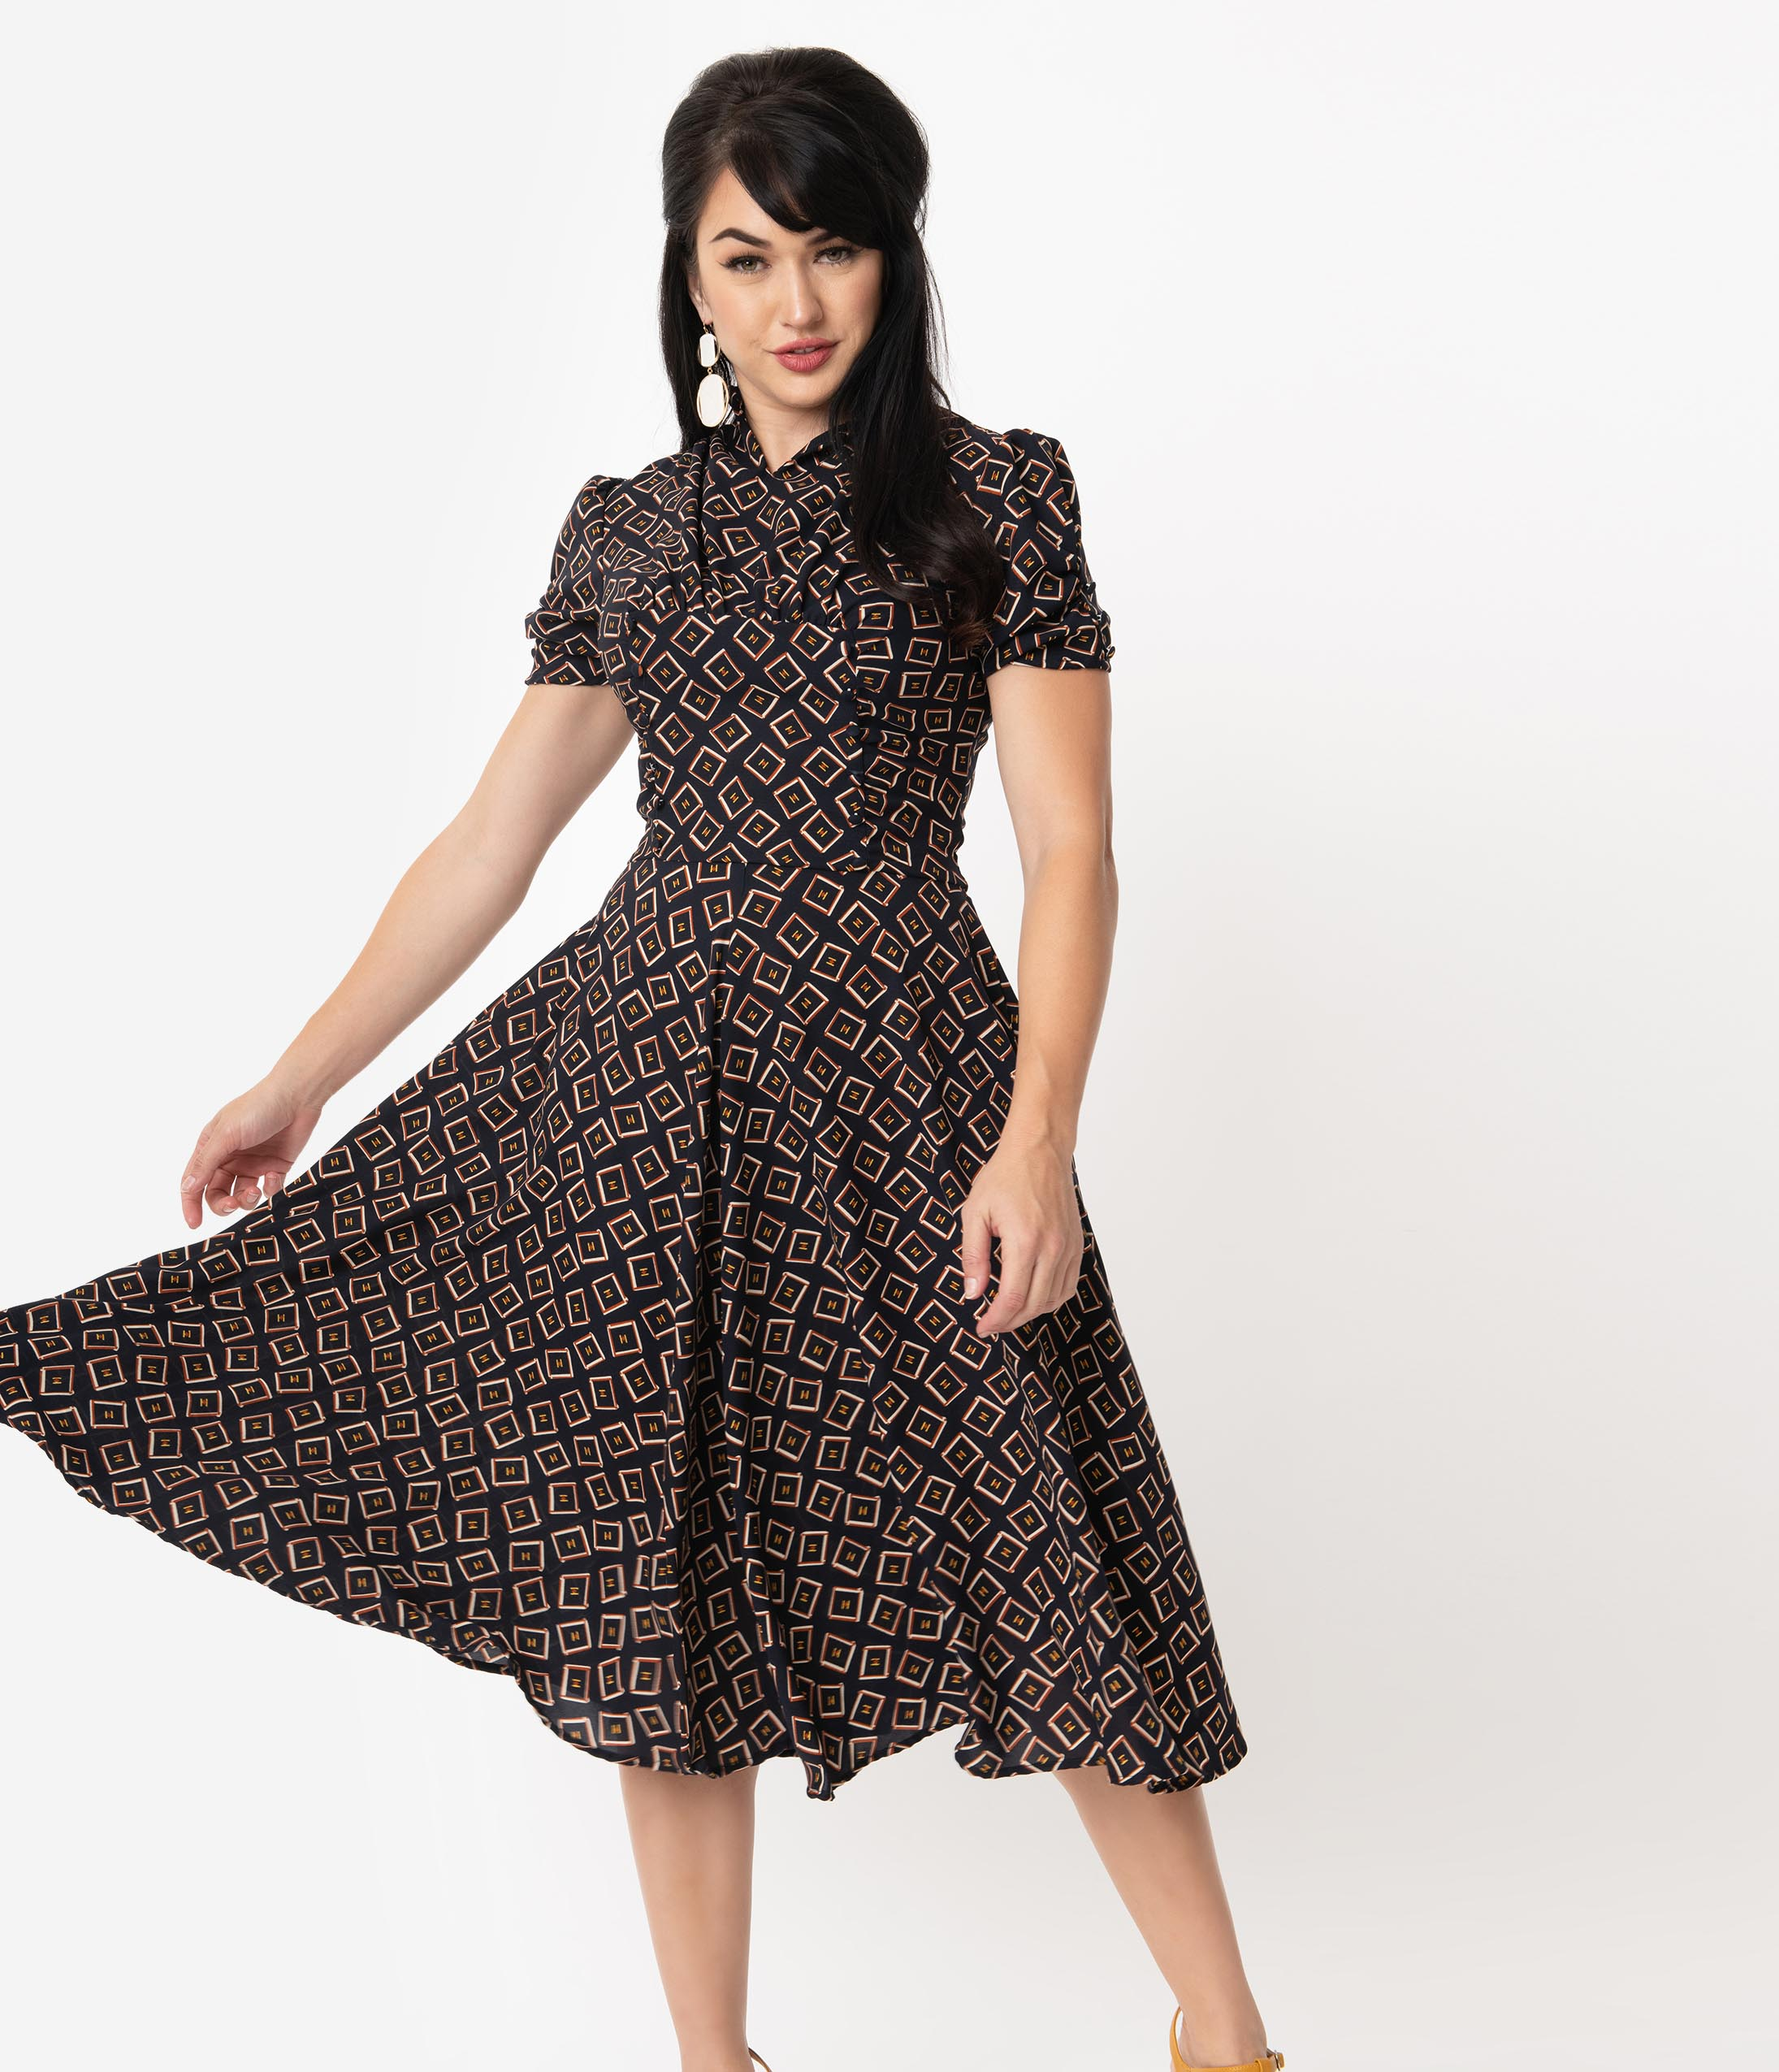 1940s Day Dress Styles, House Dresses Unique Vintage 1940S Style Black Box Print Camilla Midi Dress $88.00 AT vintagedancer.com